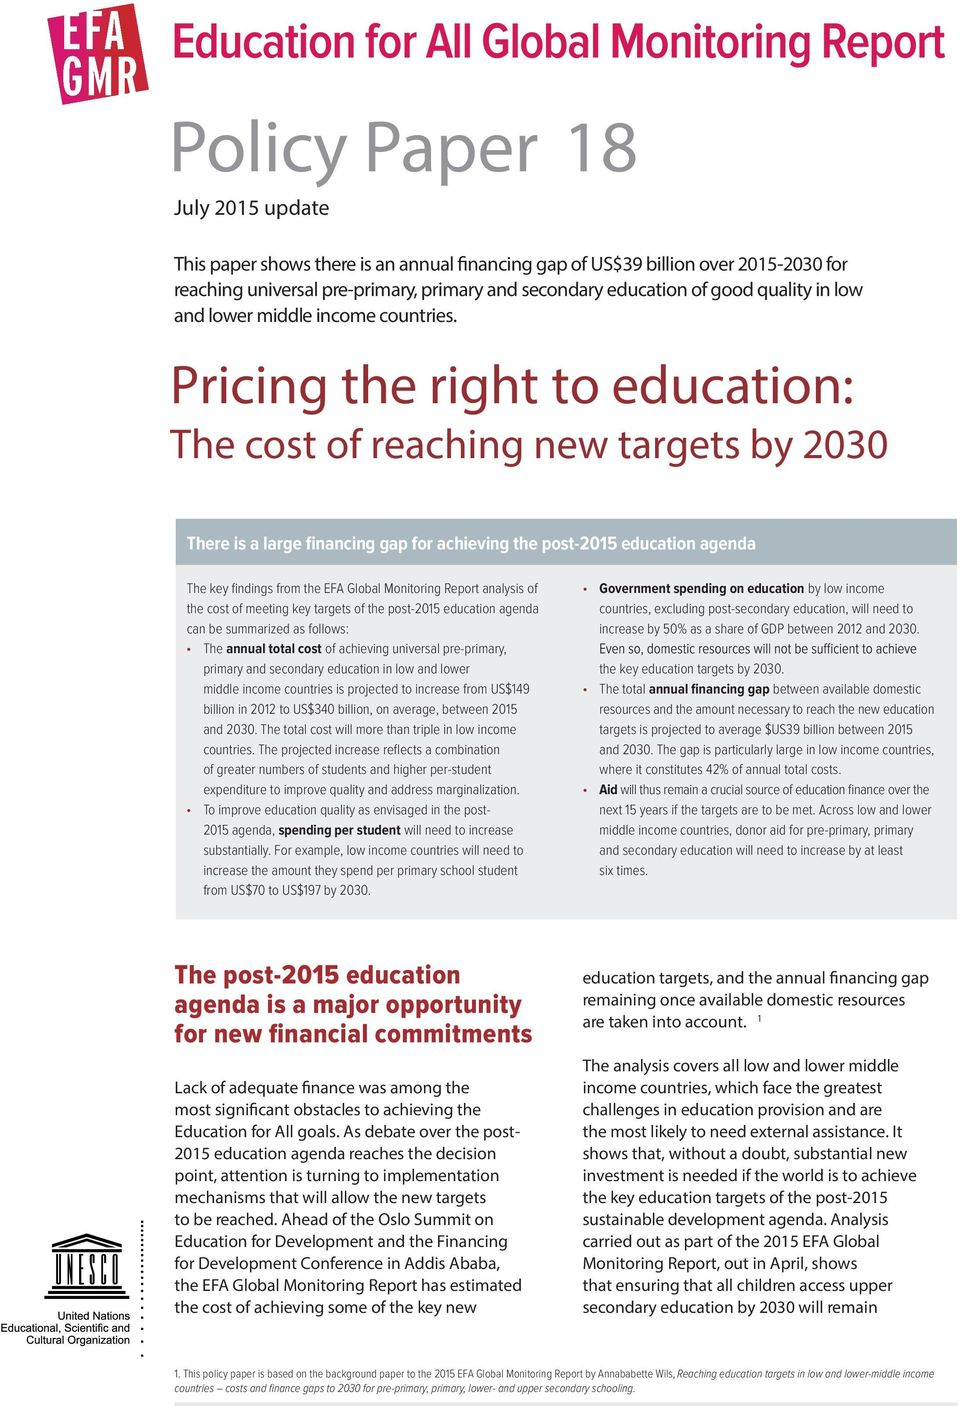 Pricing the right to education: The cost of reaching new targets by 2030 There is a large financing gap for achieving the post-2015 education agenda The key findings from the EFA Global Monitoring